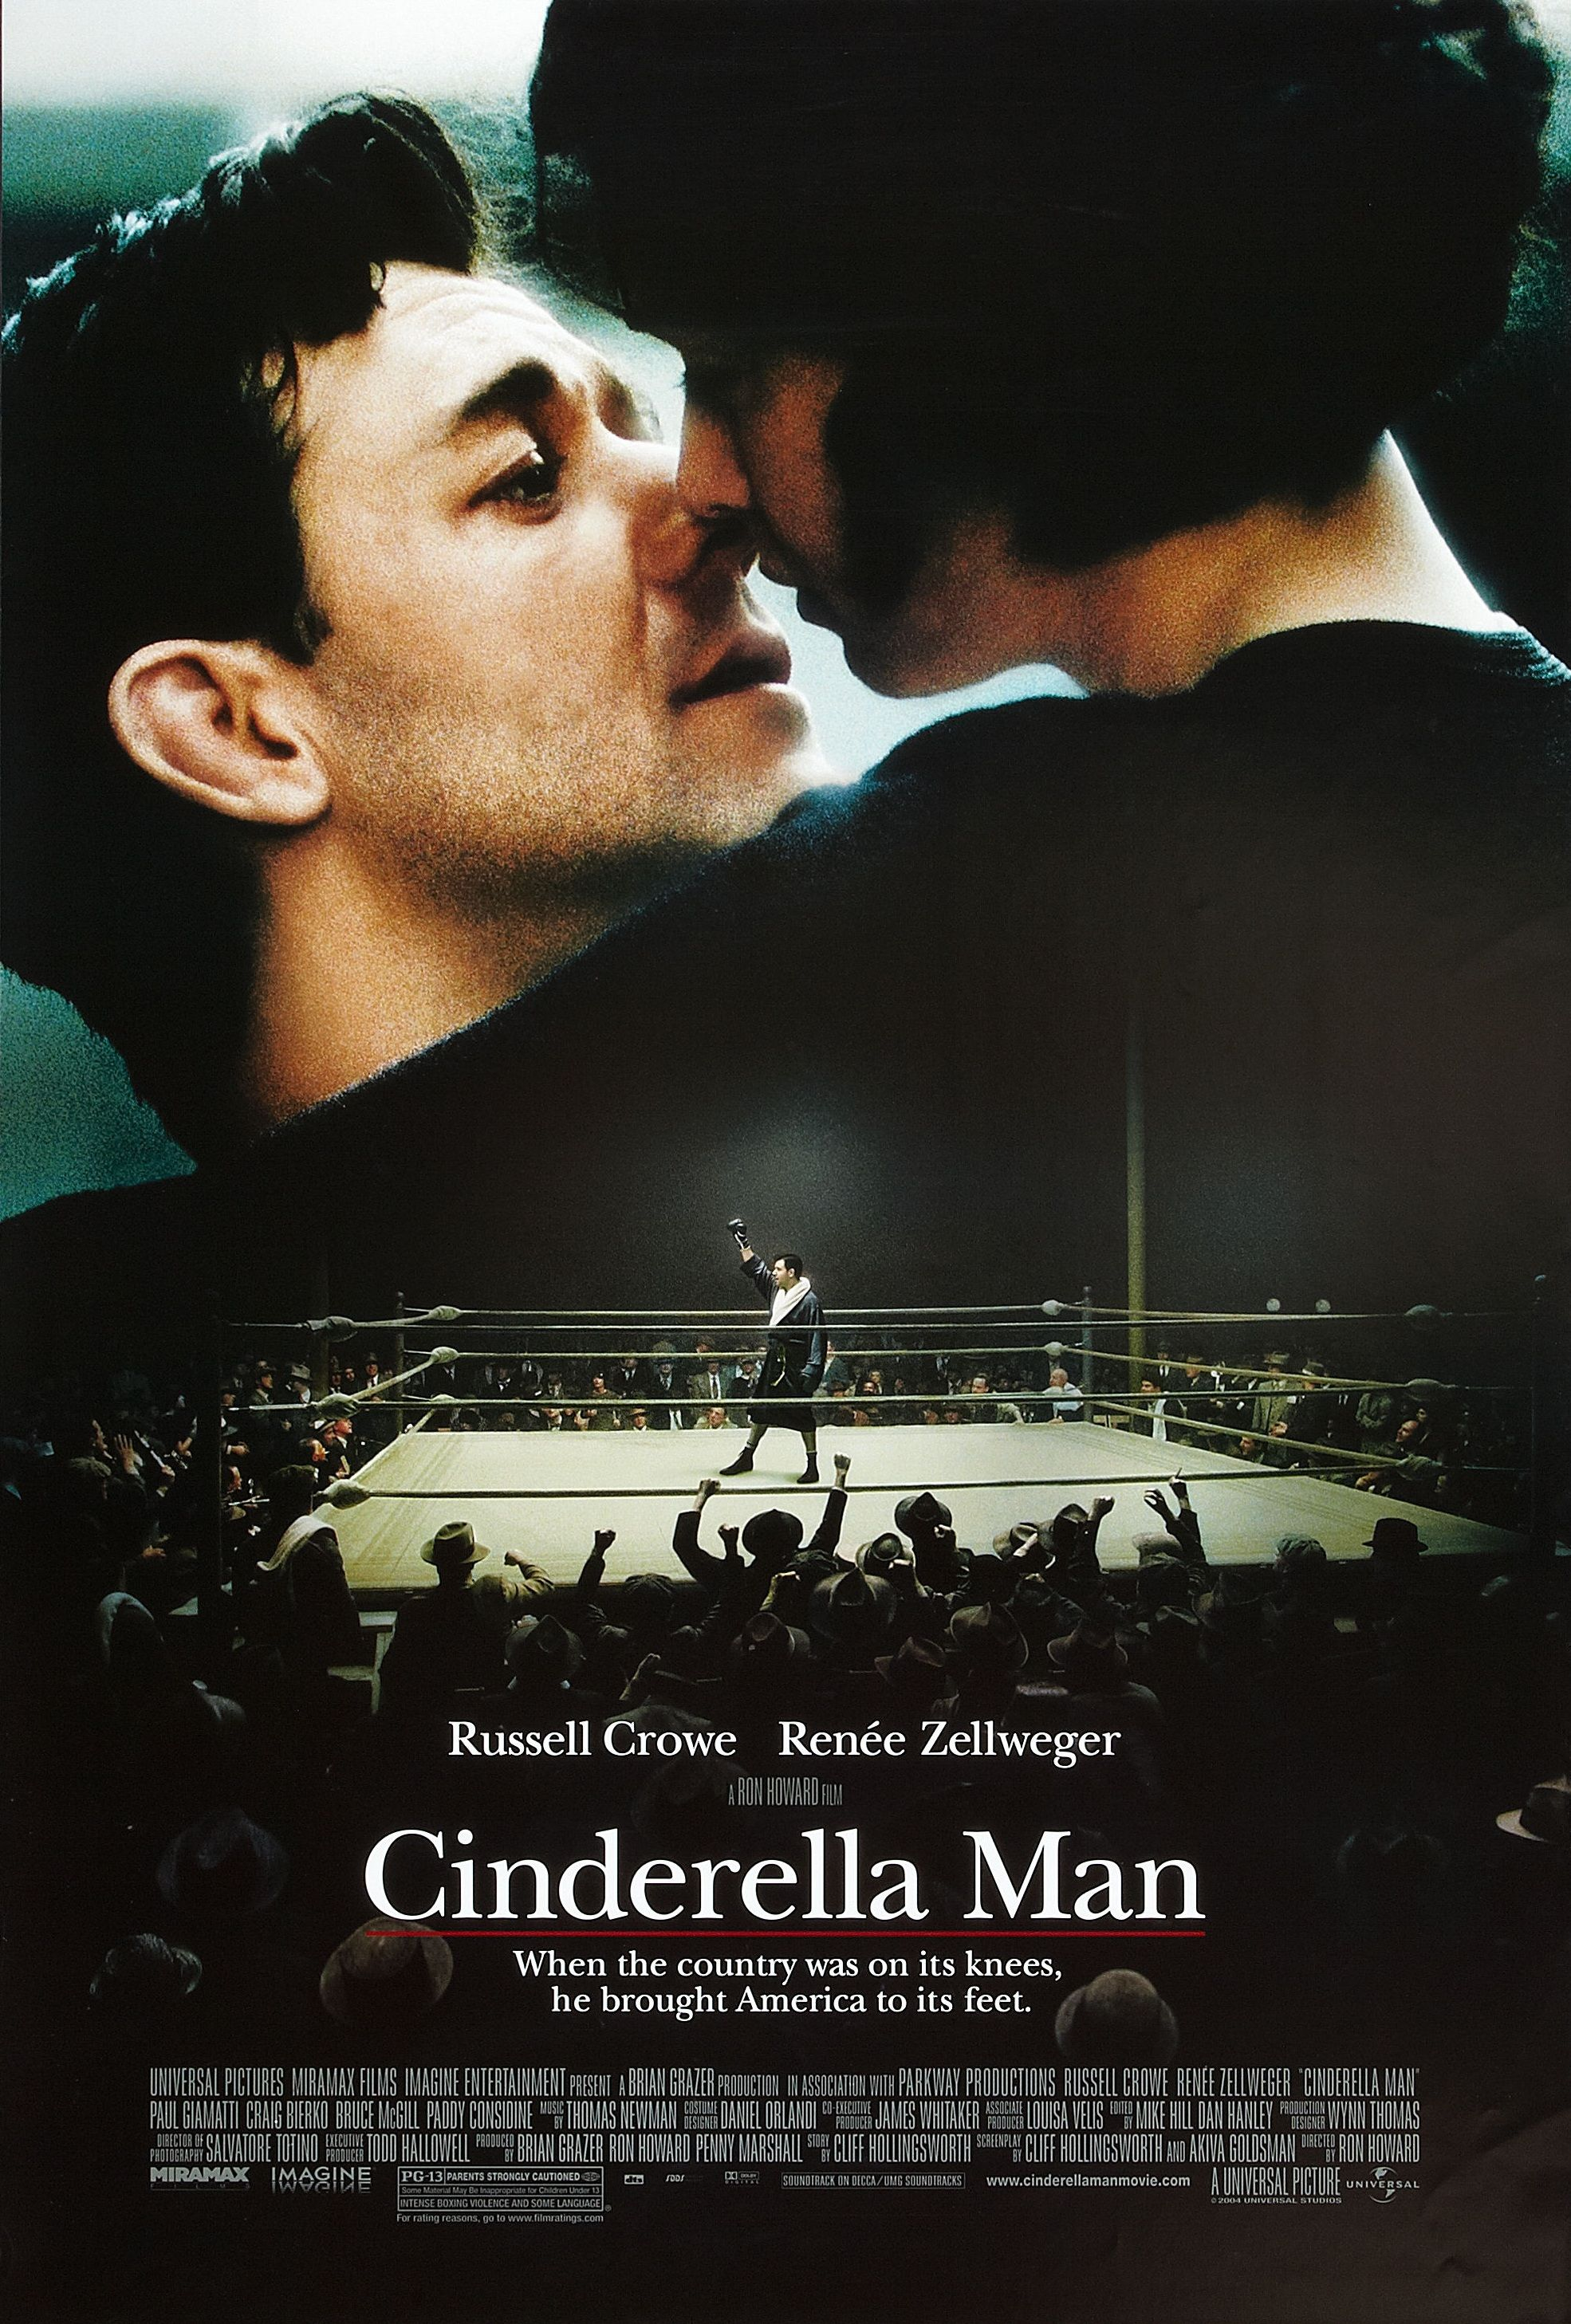 cinderella man - my favorite ron howard/russell crowe movie. when i